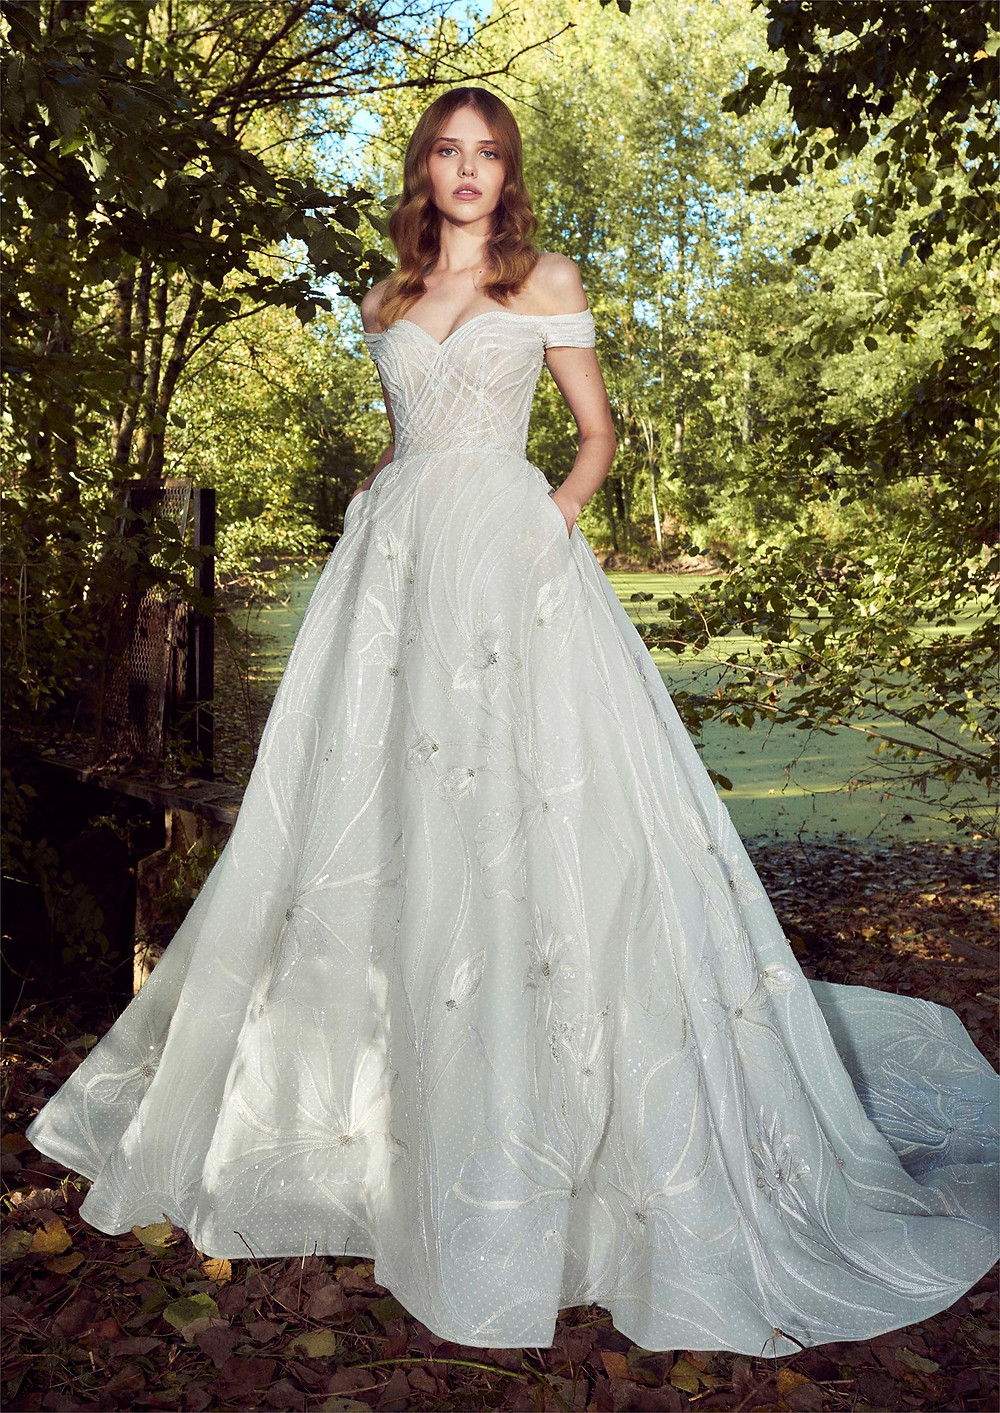 A Zuhair Murad off the shoulder ball gown wedding dress with pockets and a sweetheart neckline